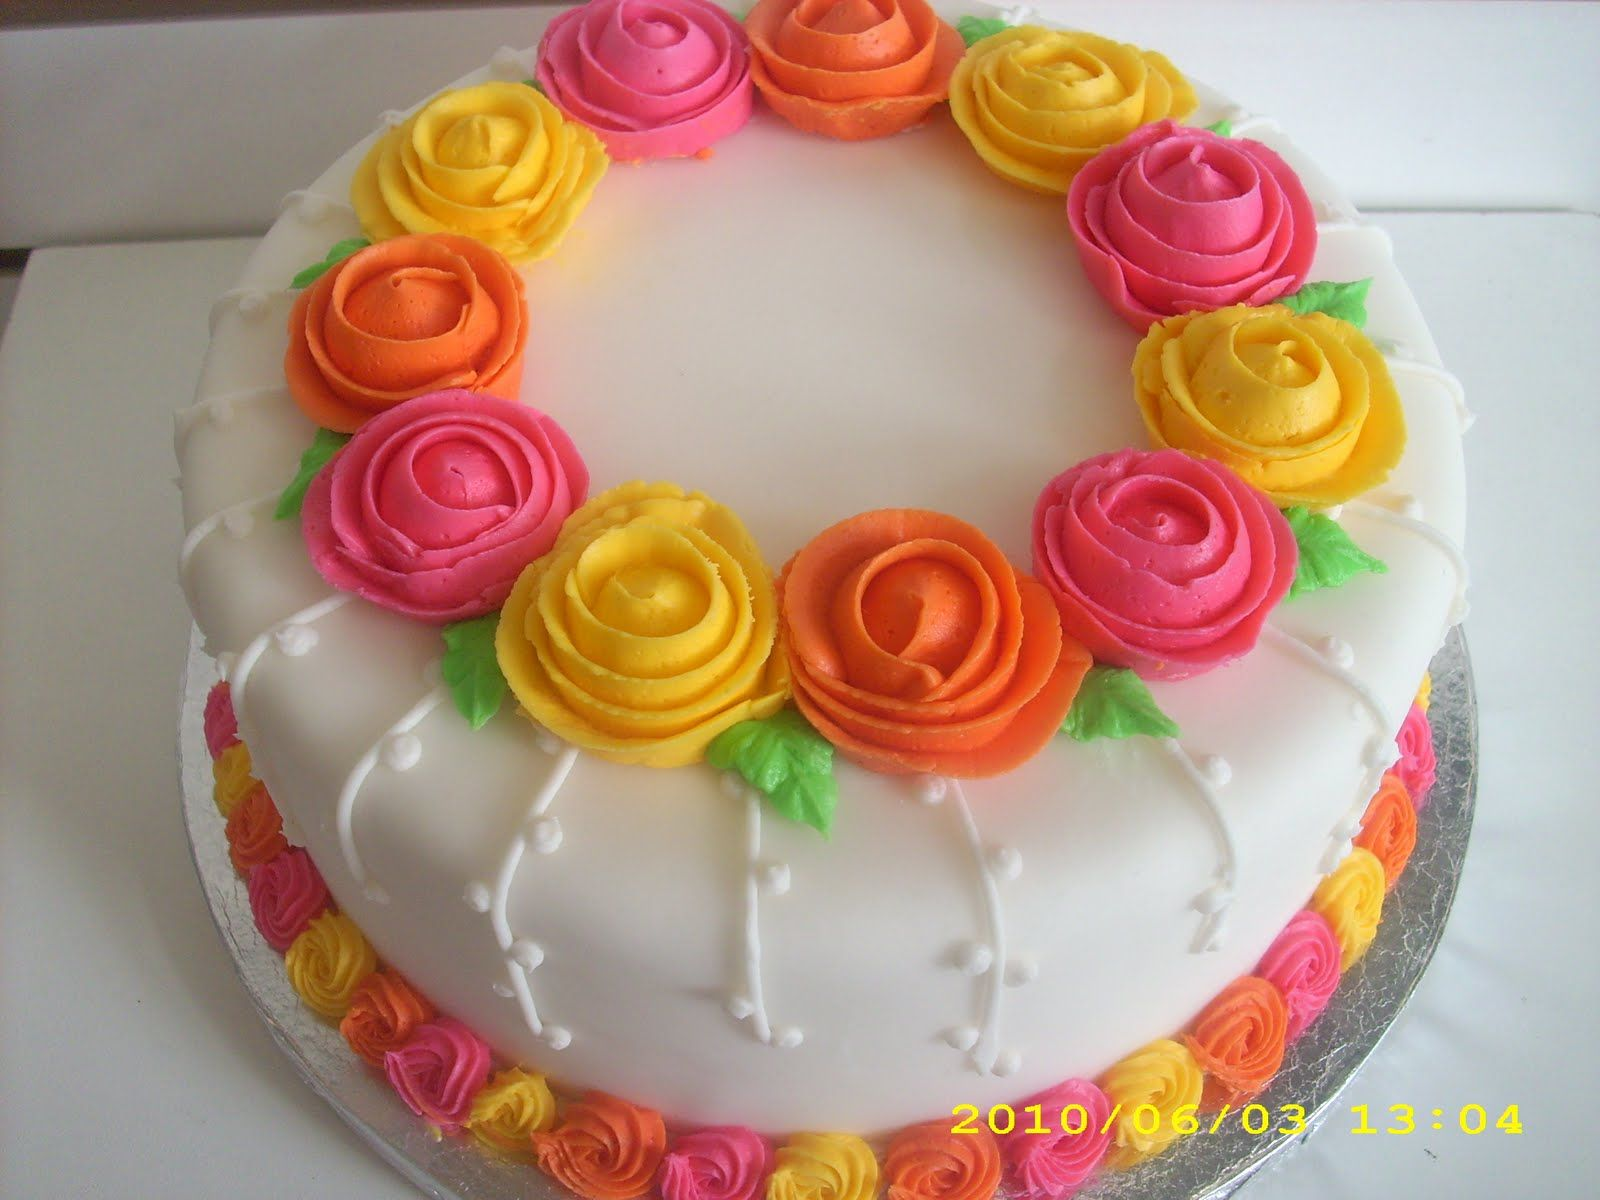 Simple Cake Decoration Images : simple cake decoration the wilton method decorating ...